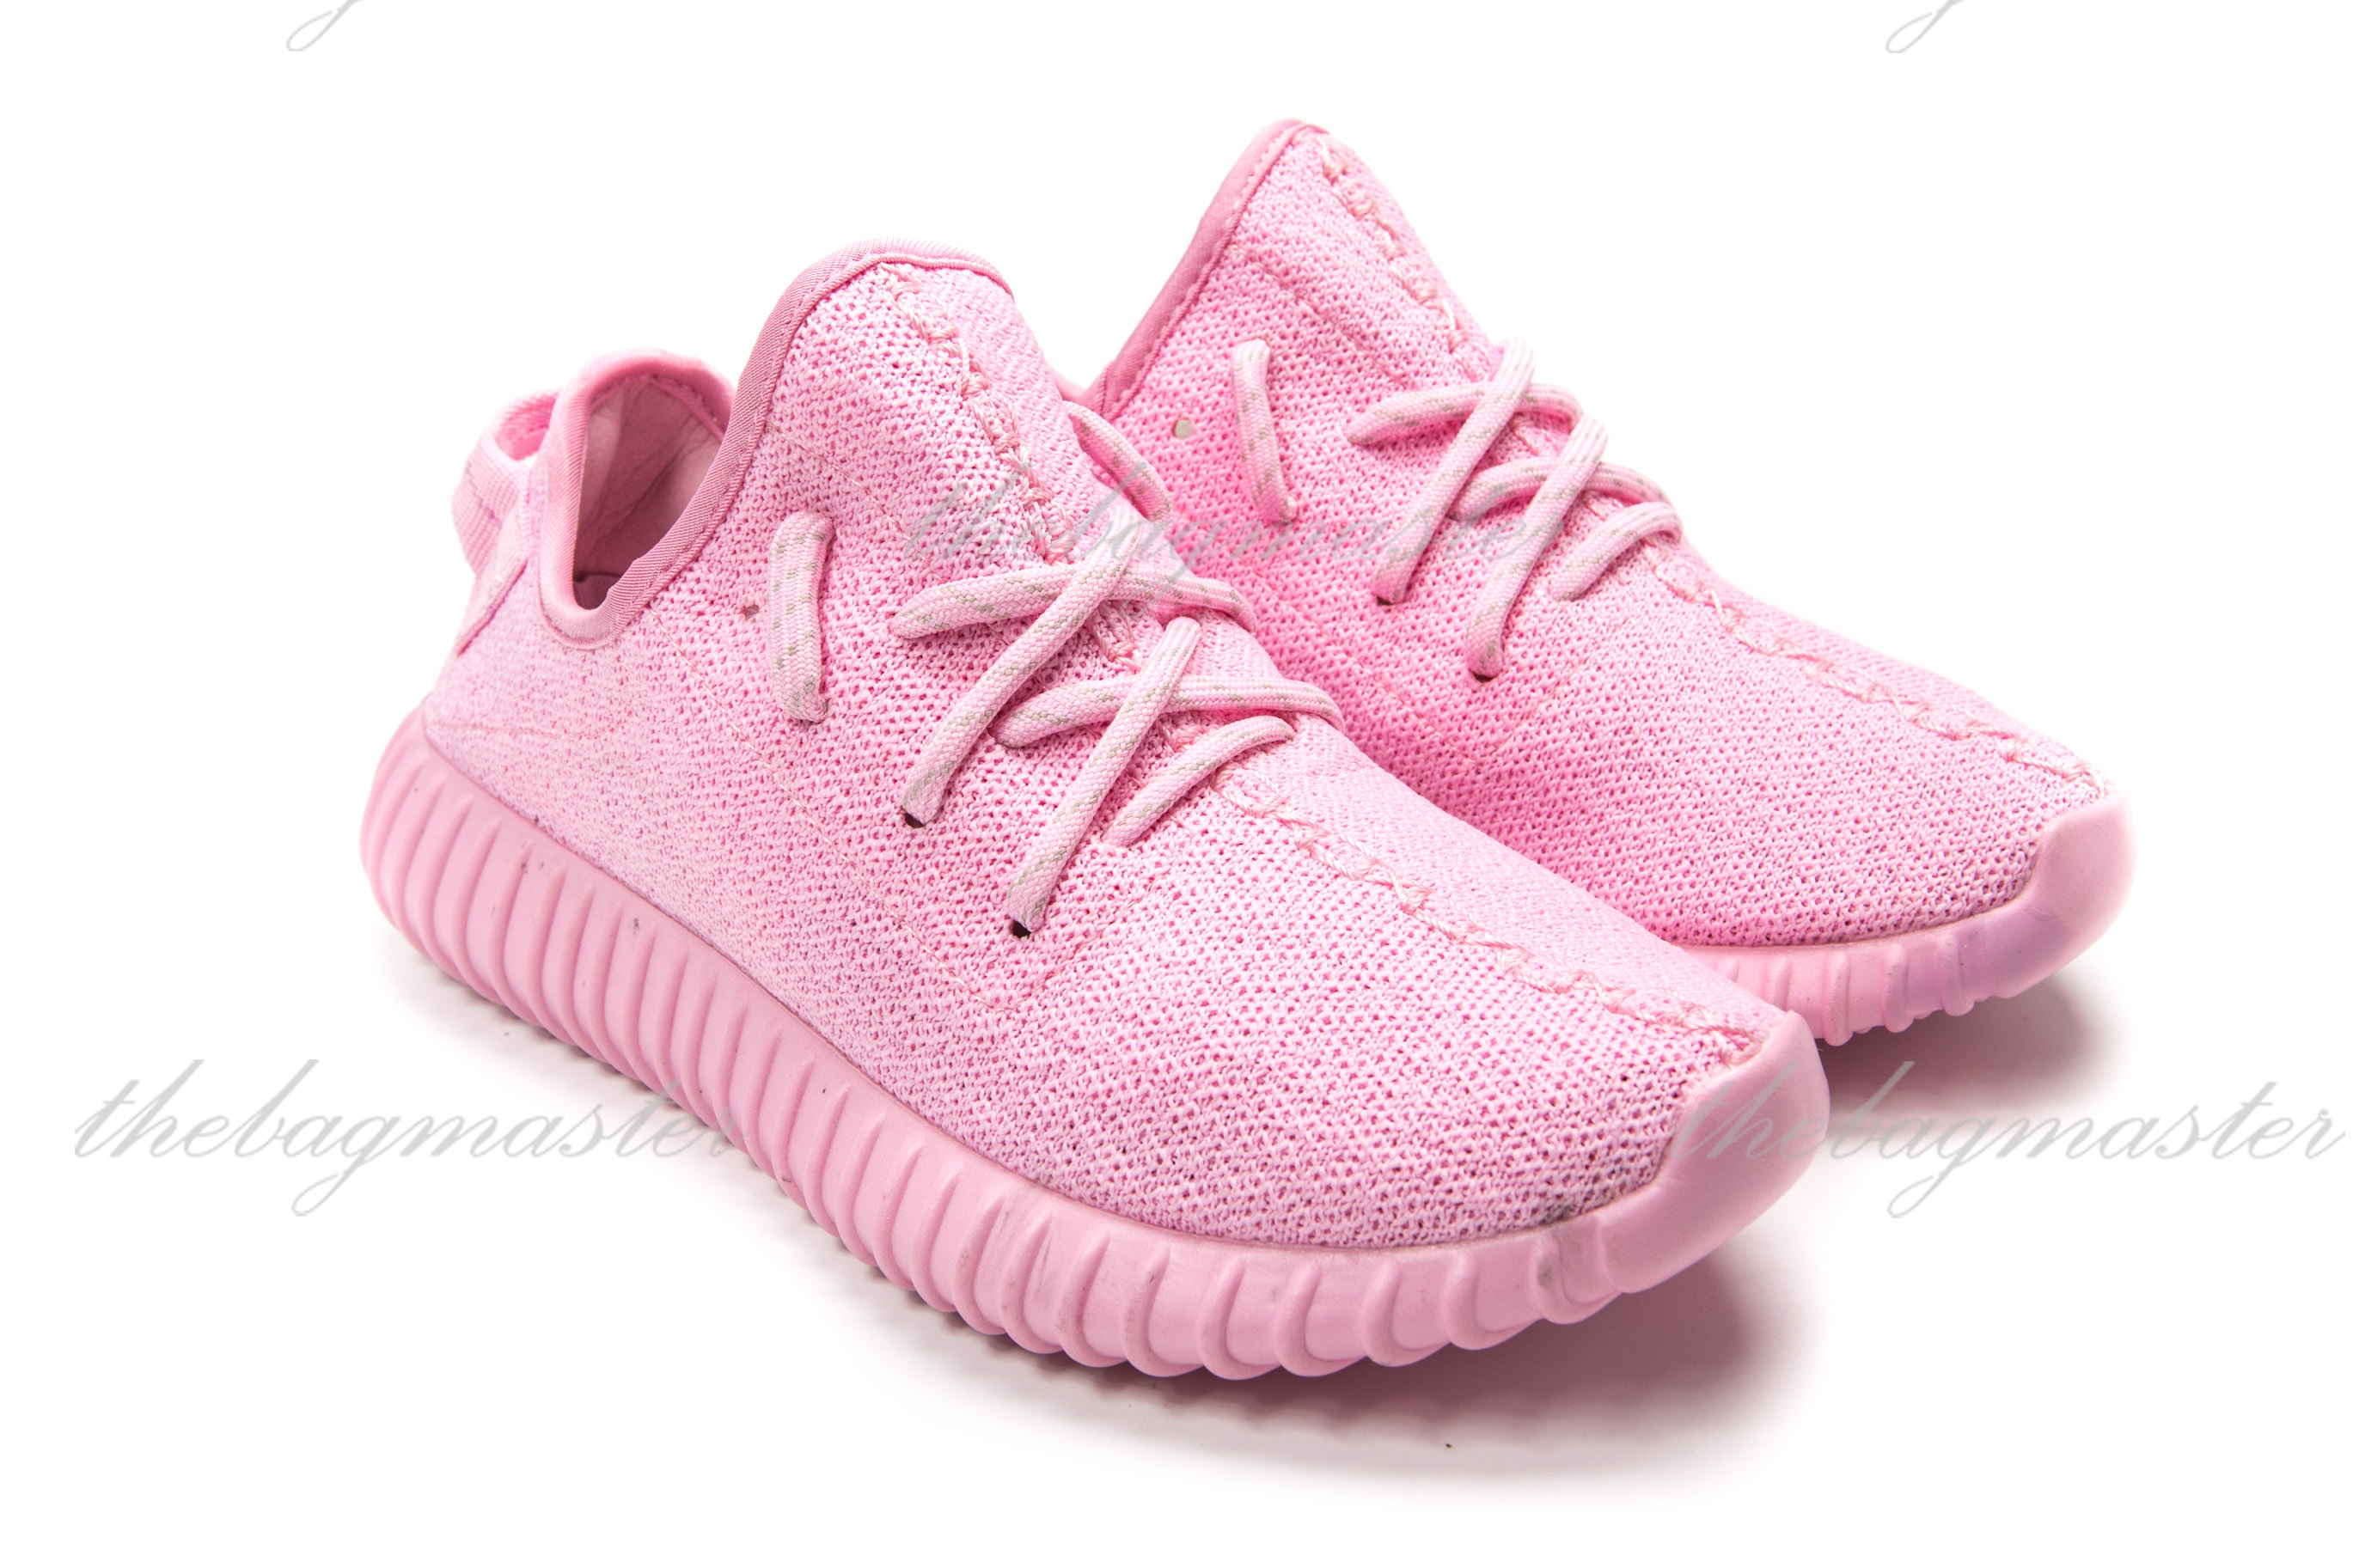 """e87a9448dd6de Adidas Yeezy 350 Boost """"Rose Gold"""" Concept Pink — The Lifestyle Store"""